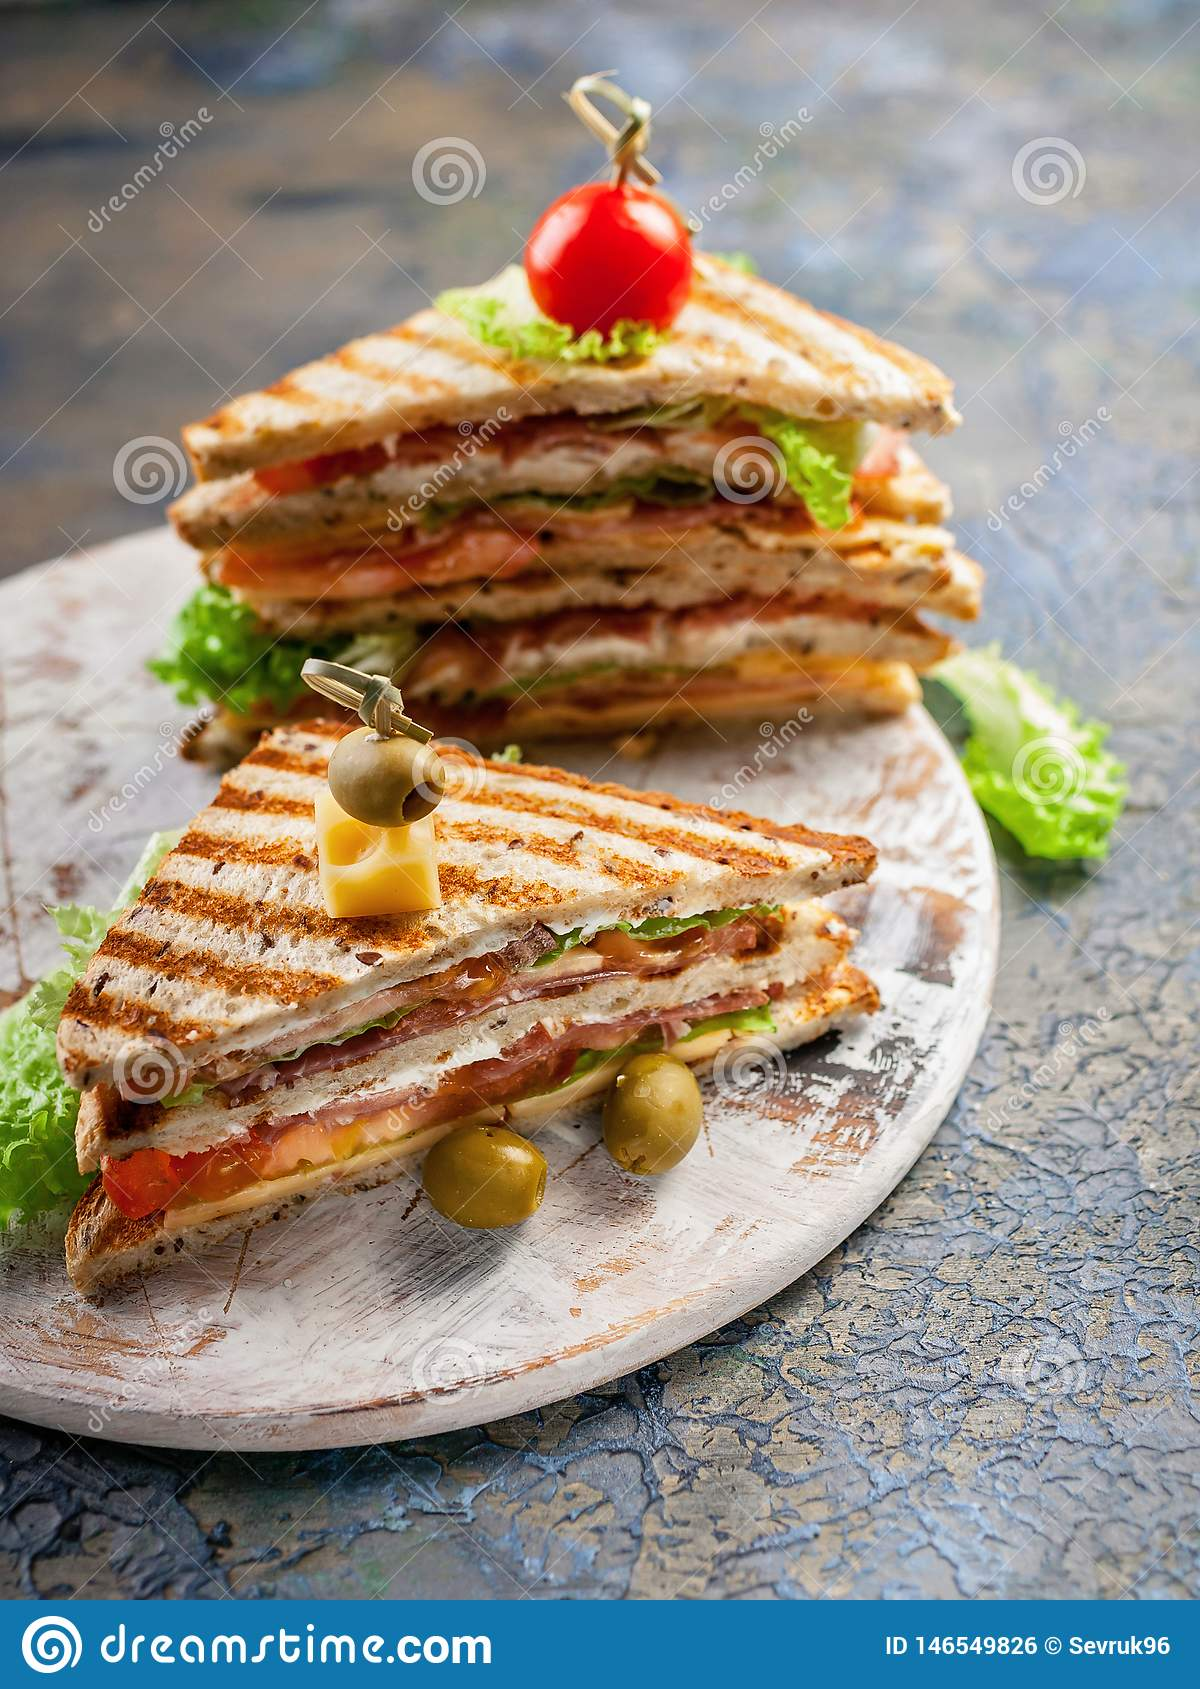 Closeup of a smoked beef sandwich and green salad on a round cutting board. Traditional breakfast or lunch. Vertical shot